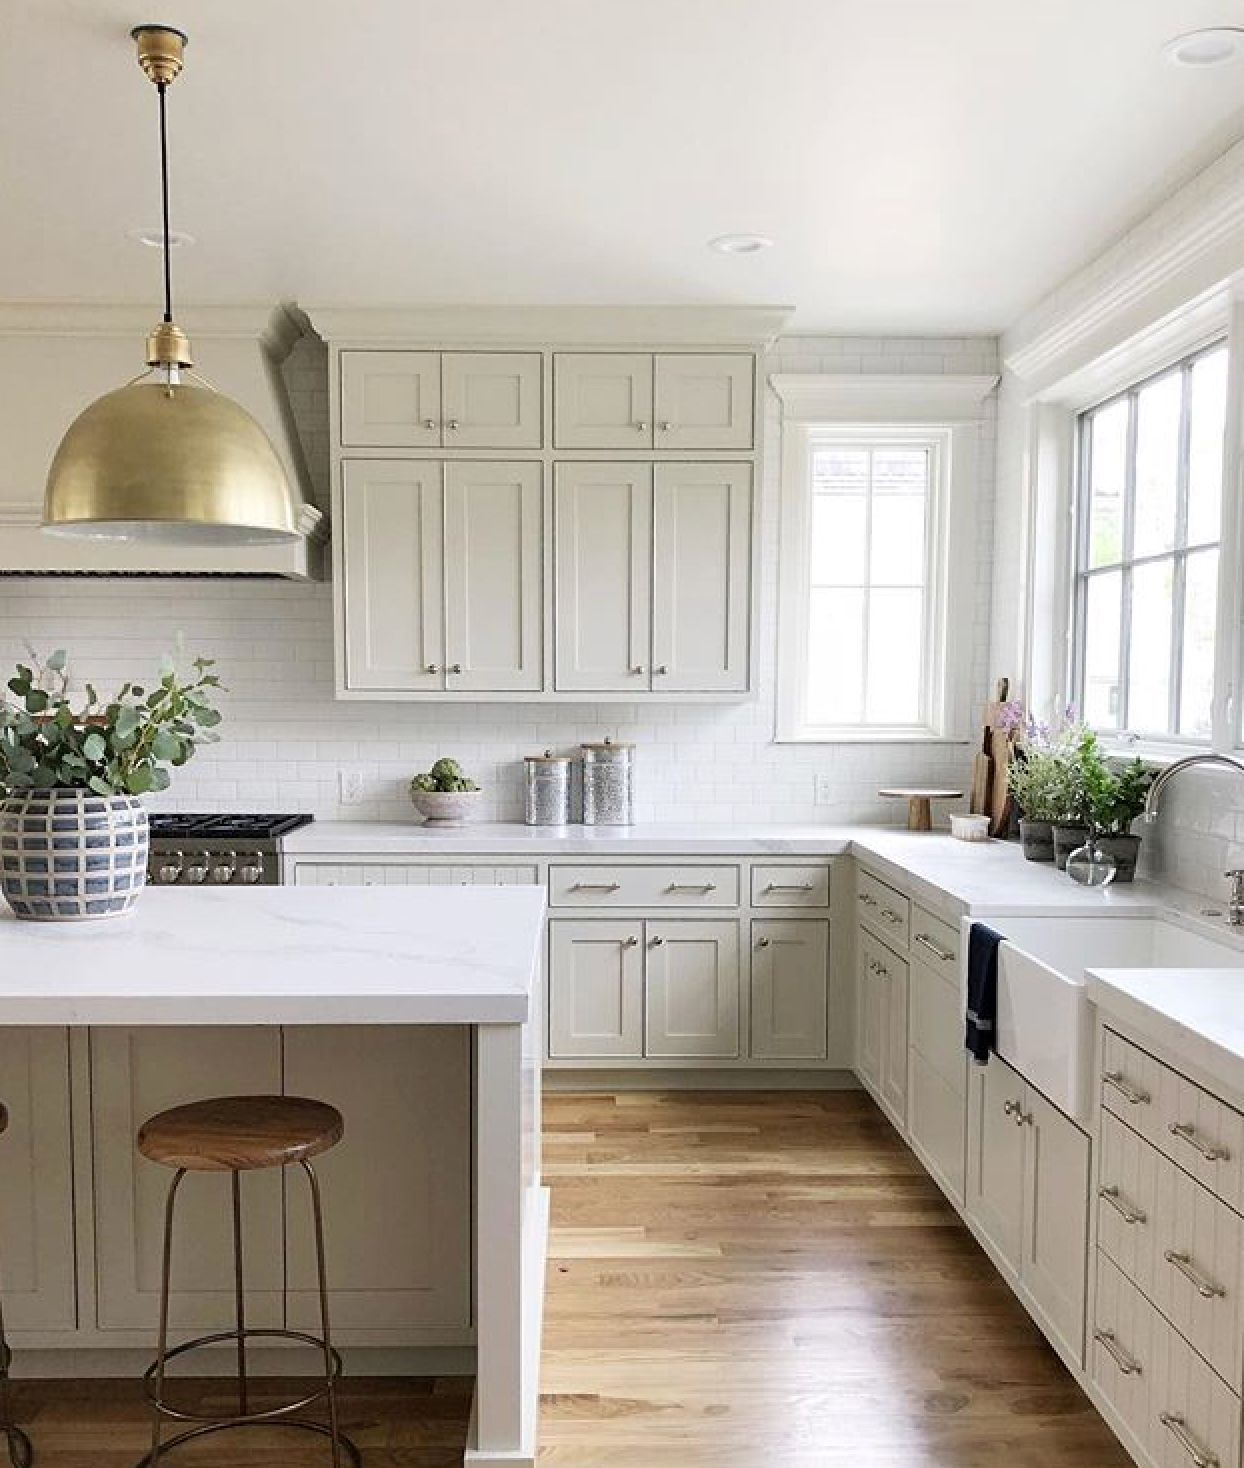 Cabinet Paint Color Ashwood By Bm Contemporary Style Kitchen Kitchen Trends Kitchen Design